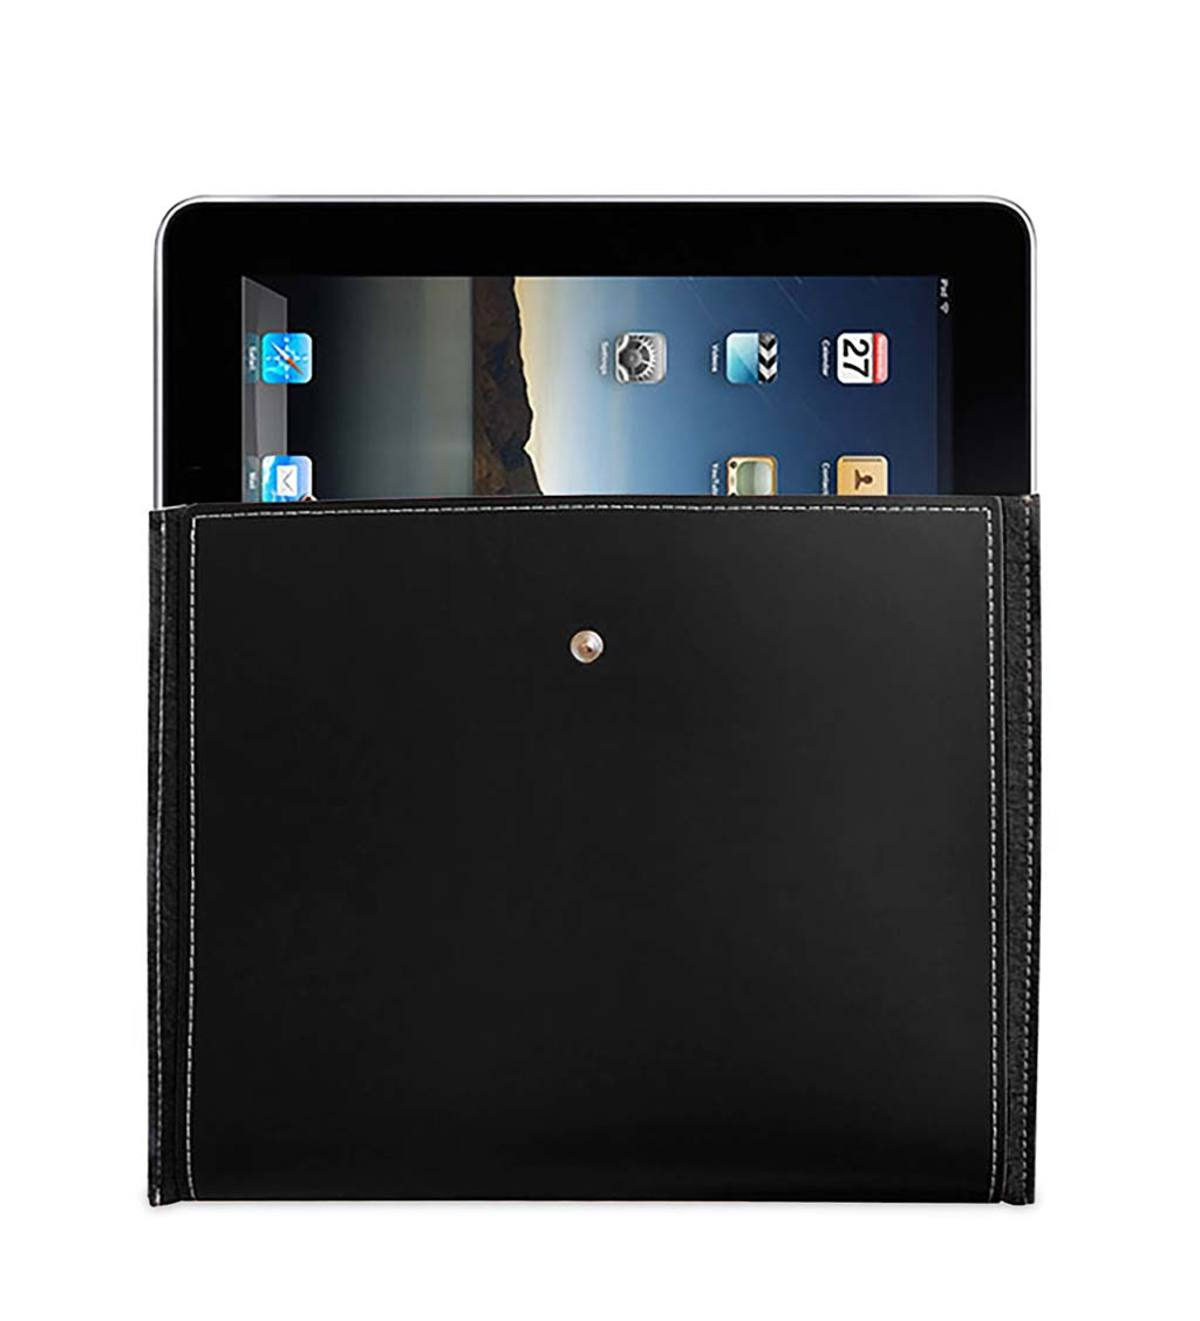 Recycled Leather iPad Case - Black